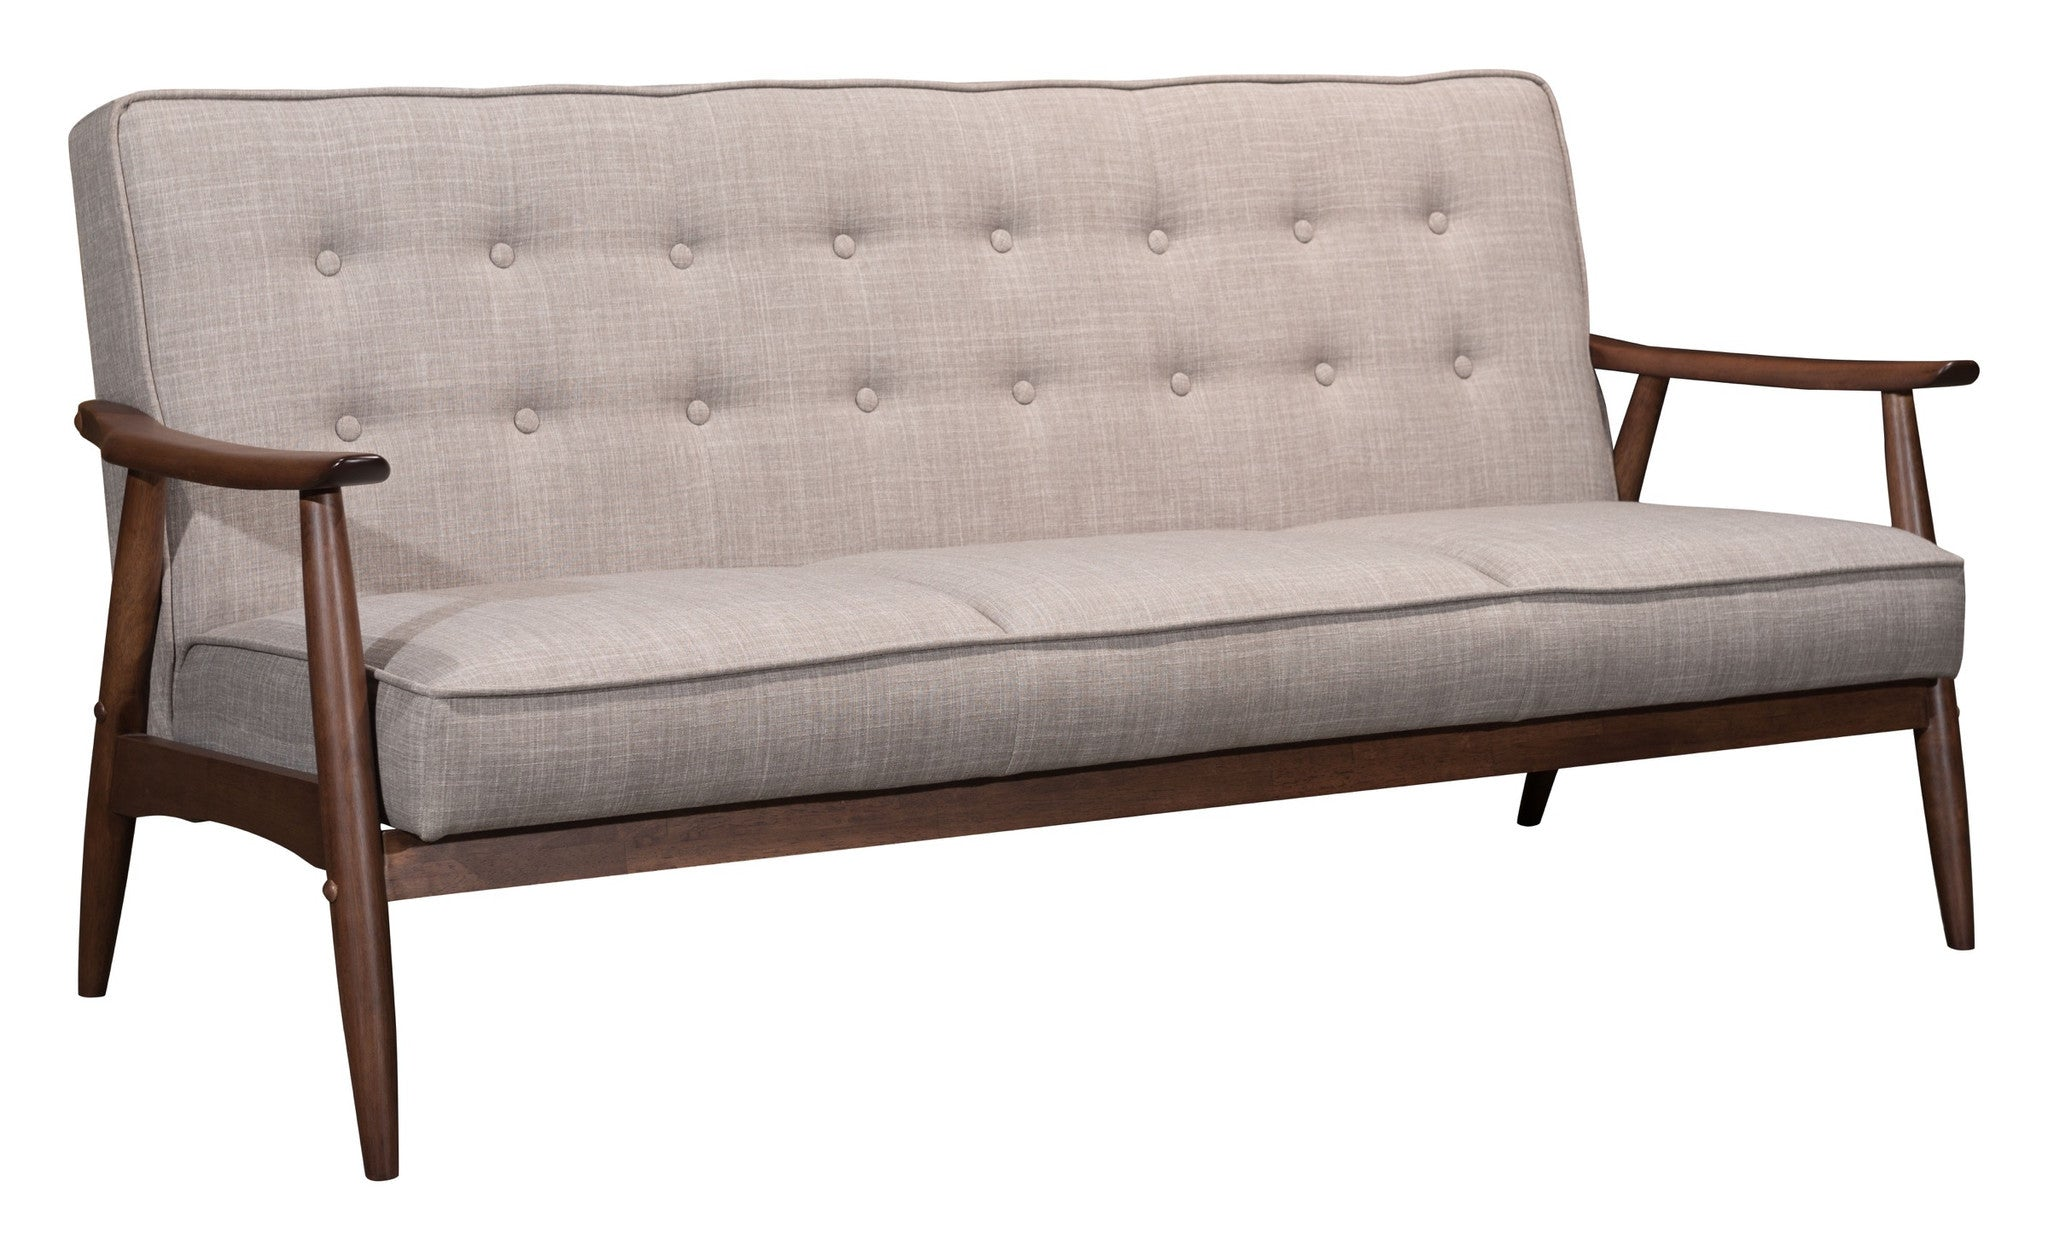 Rocky Sofa In Tufted Putty Gray Poly Linen On Walnut Finish Wood Frame Sofas   ...